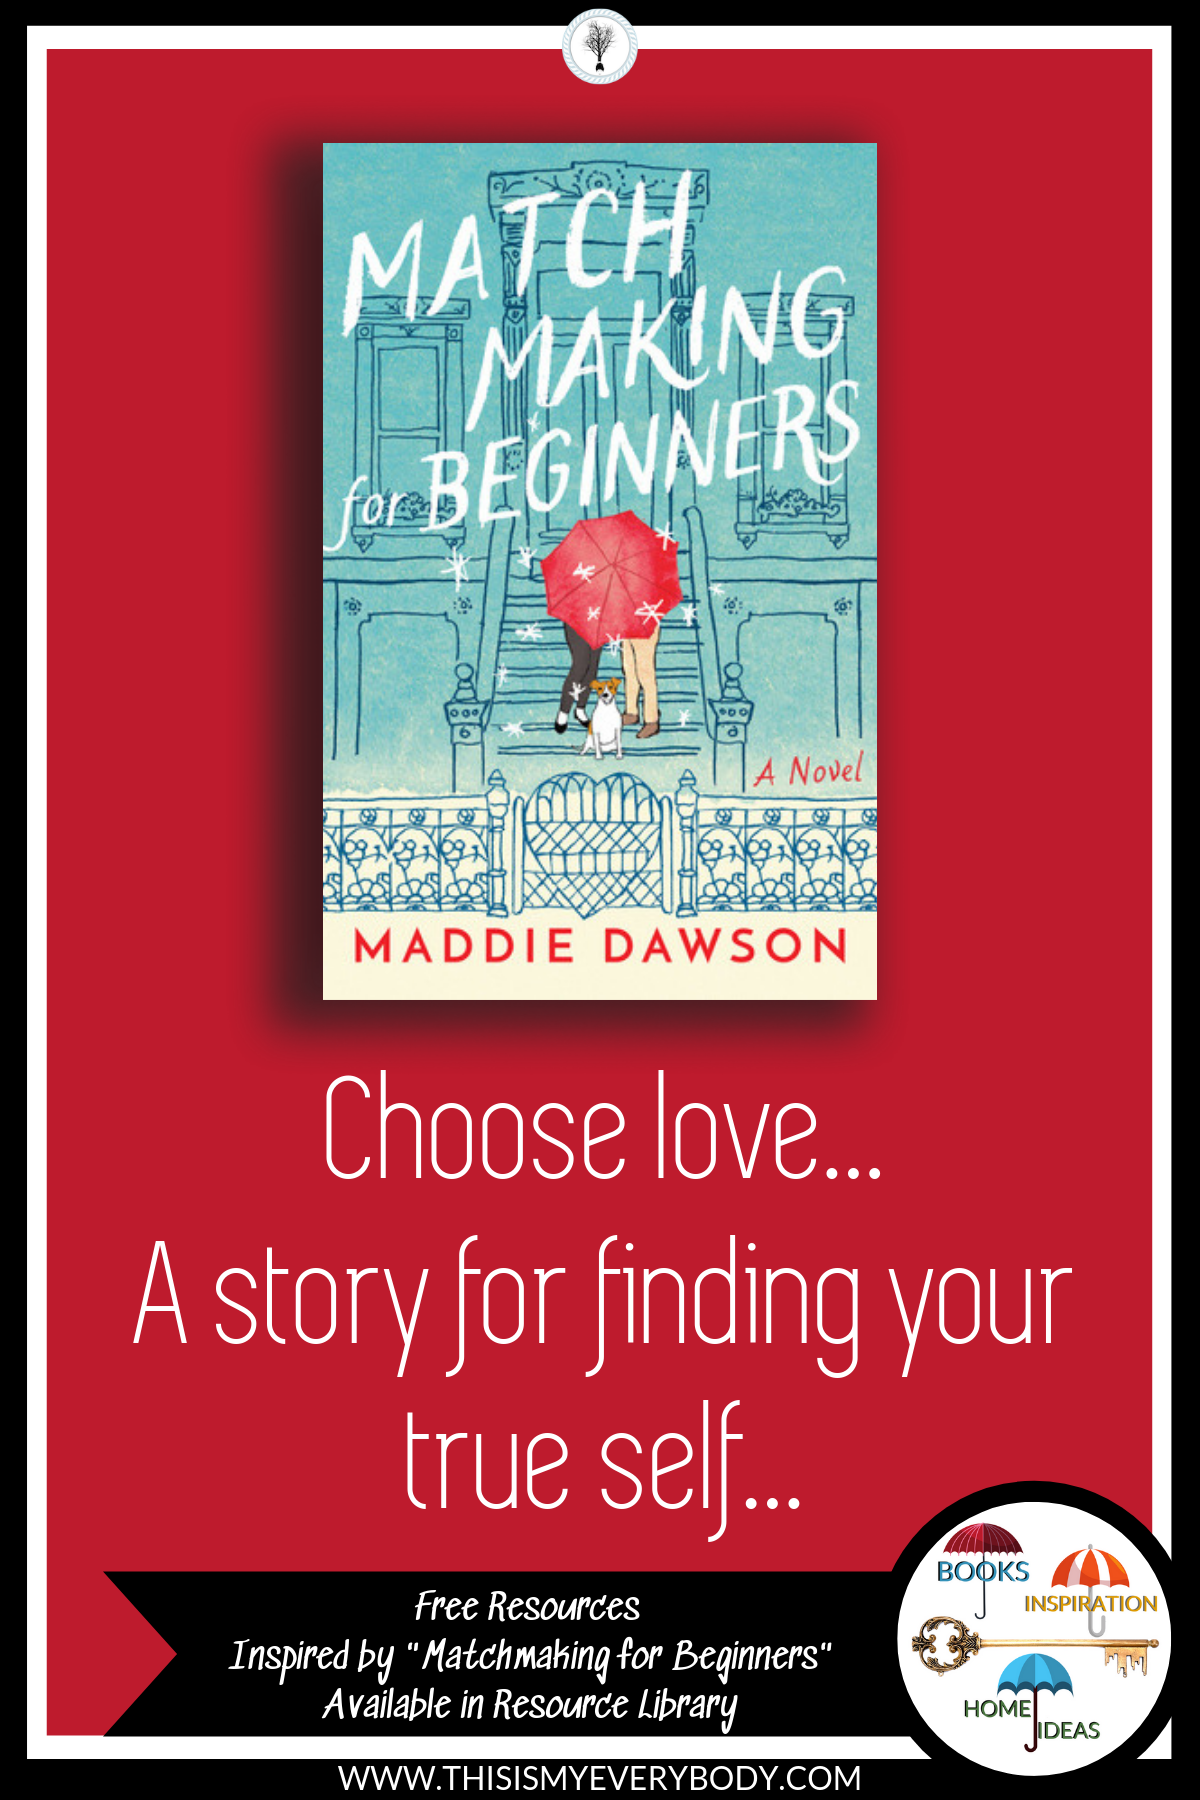 Choose love… A story for finding your true self… | Book Review: Matchmaking for Beginners by Maddie Dawson… Includes free Book Club and DIY Home Ideas resources inspired by Matchmaking for Beginner | This Is My Everybody - Books, Inspiration and Home Ideas